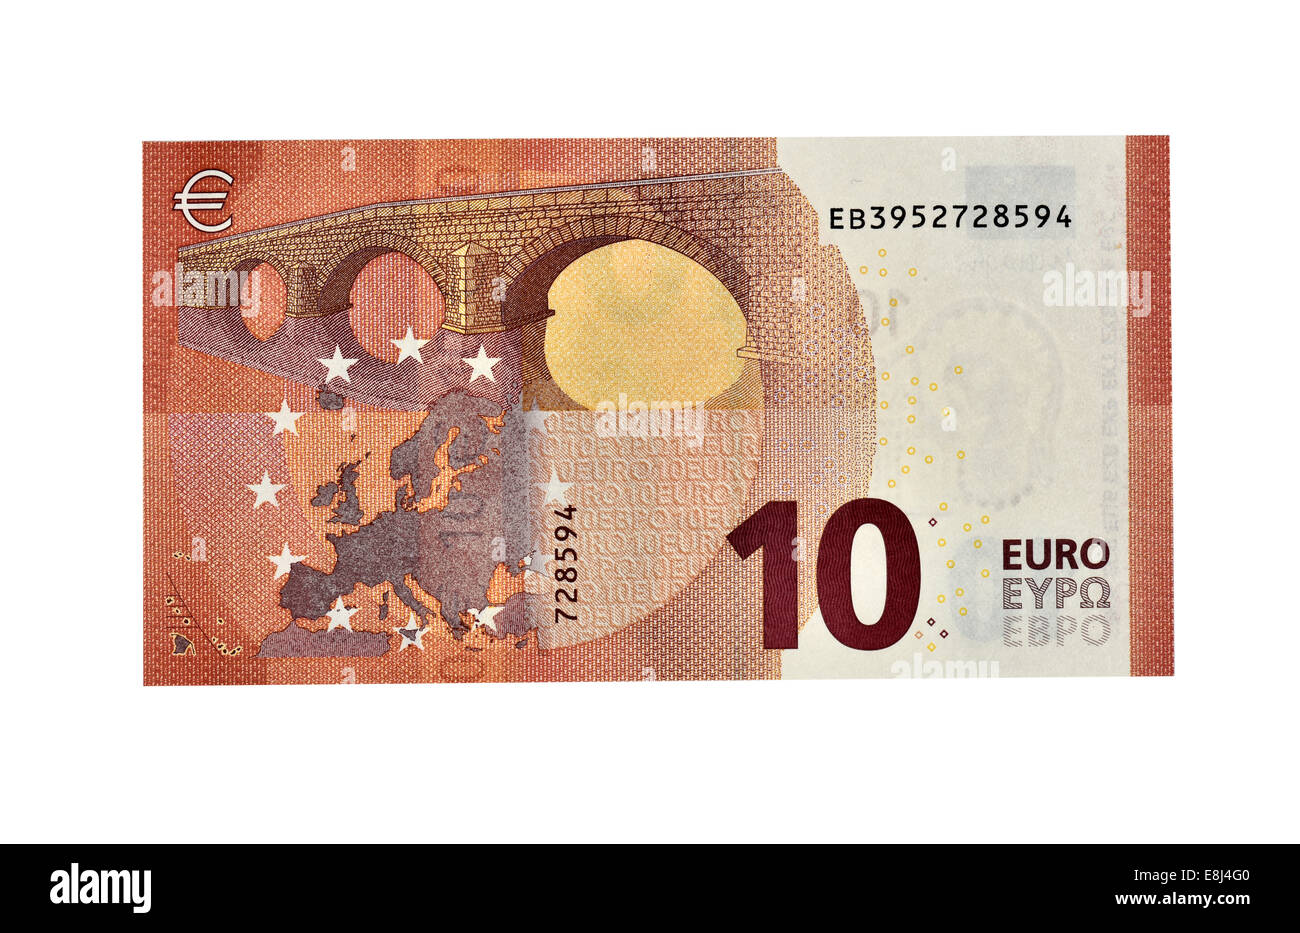 10 EURO banknote, in circulation since September 2014, back - Stock Image